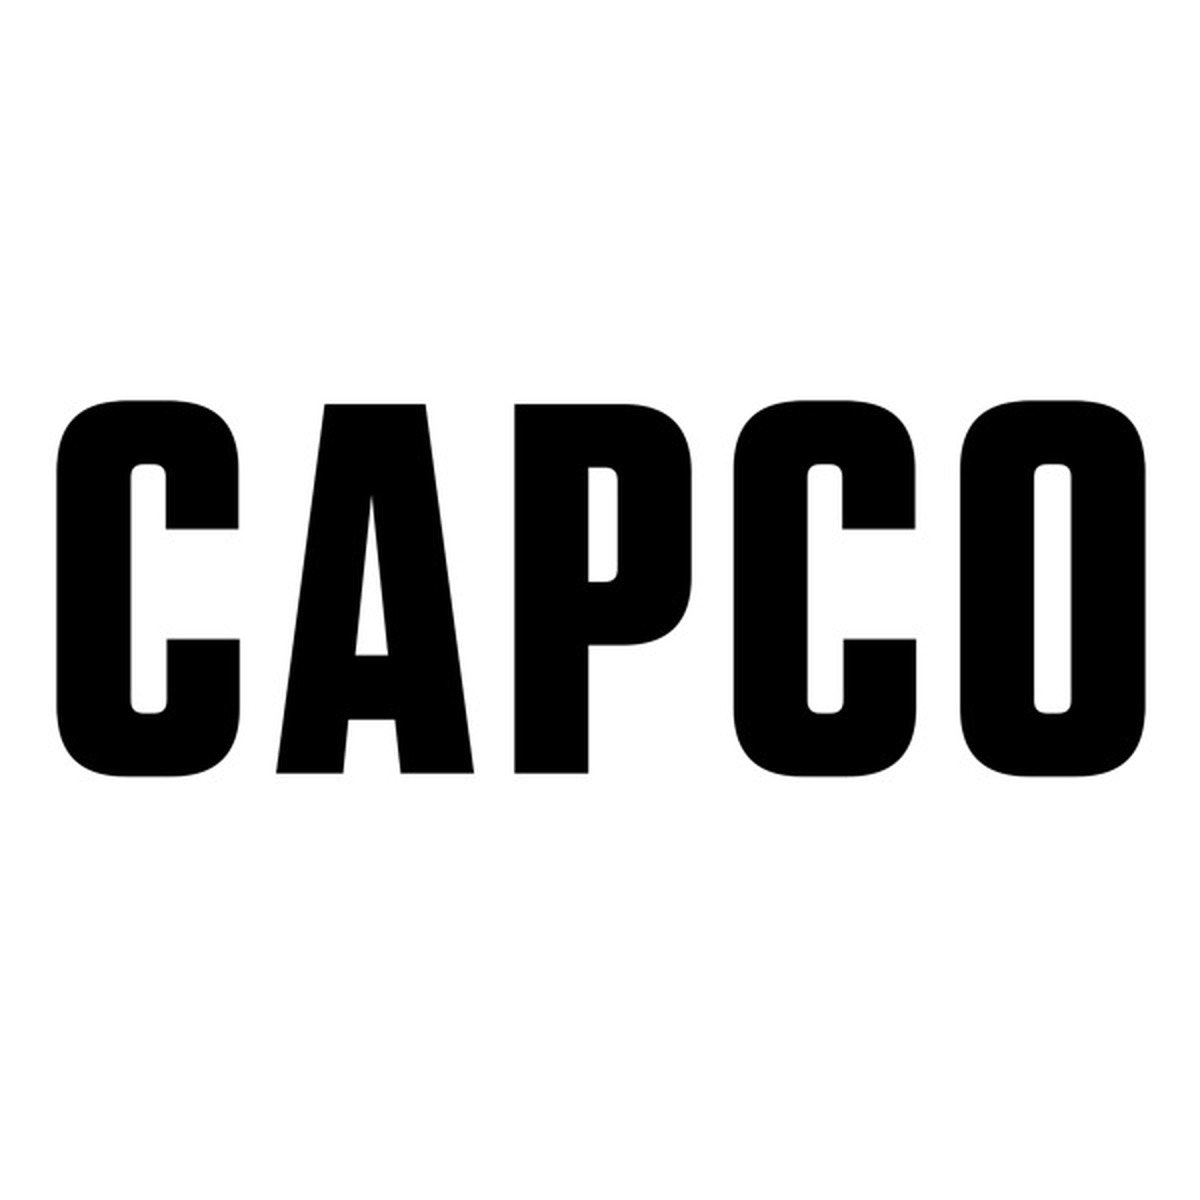 Capco - The Capital Markets Company GmbH